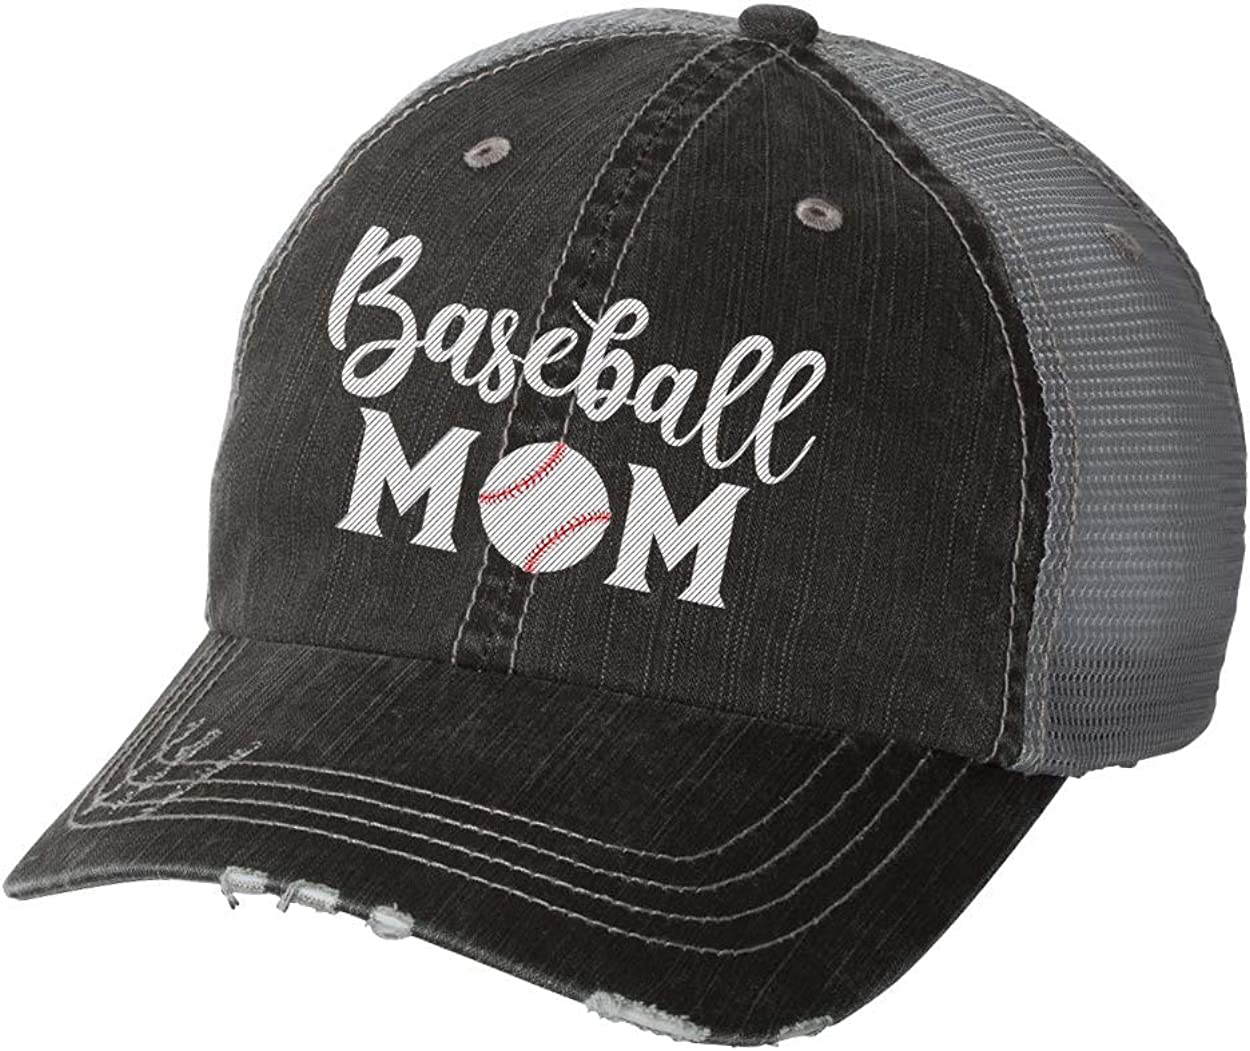 Women's Sports Mom Embroidered Ladies Fit Distressed Trucker Hat